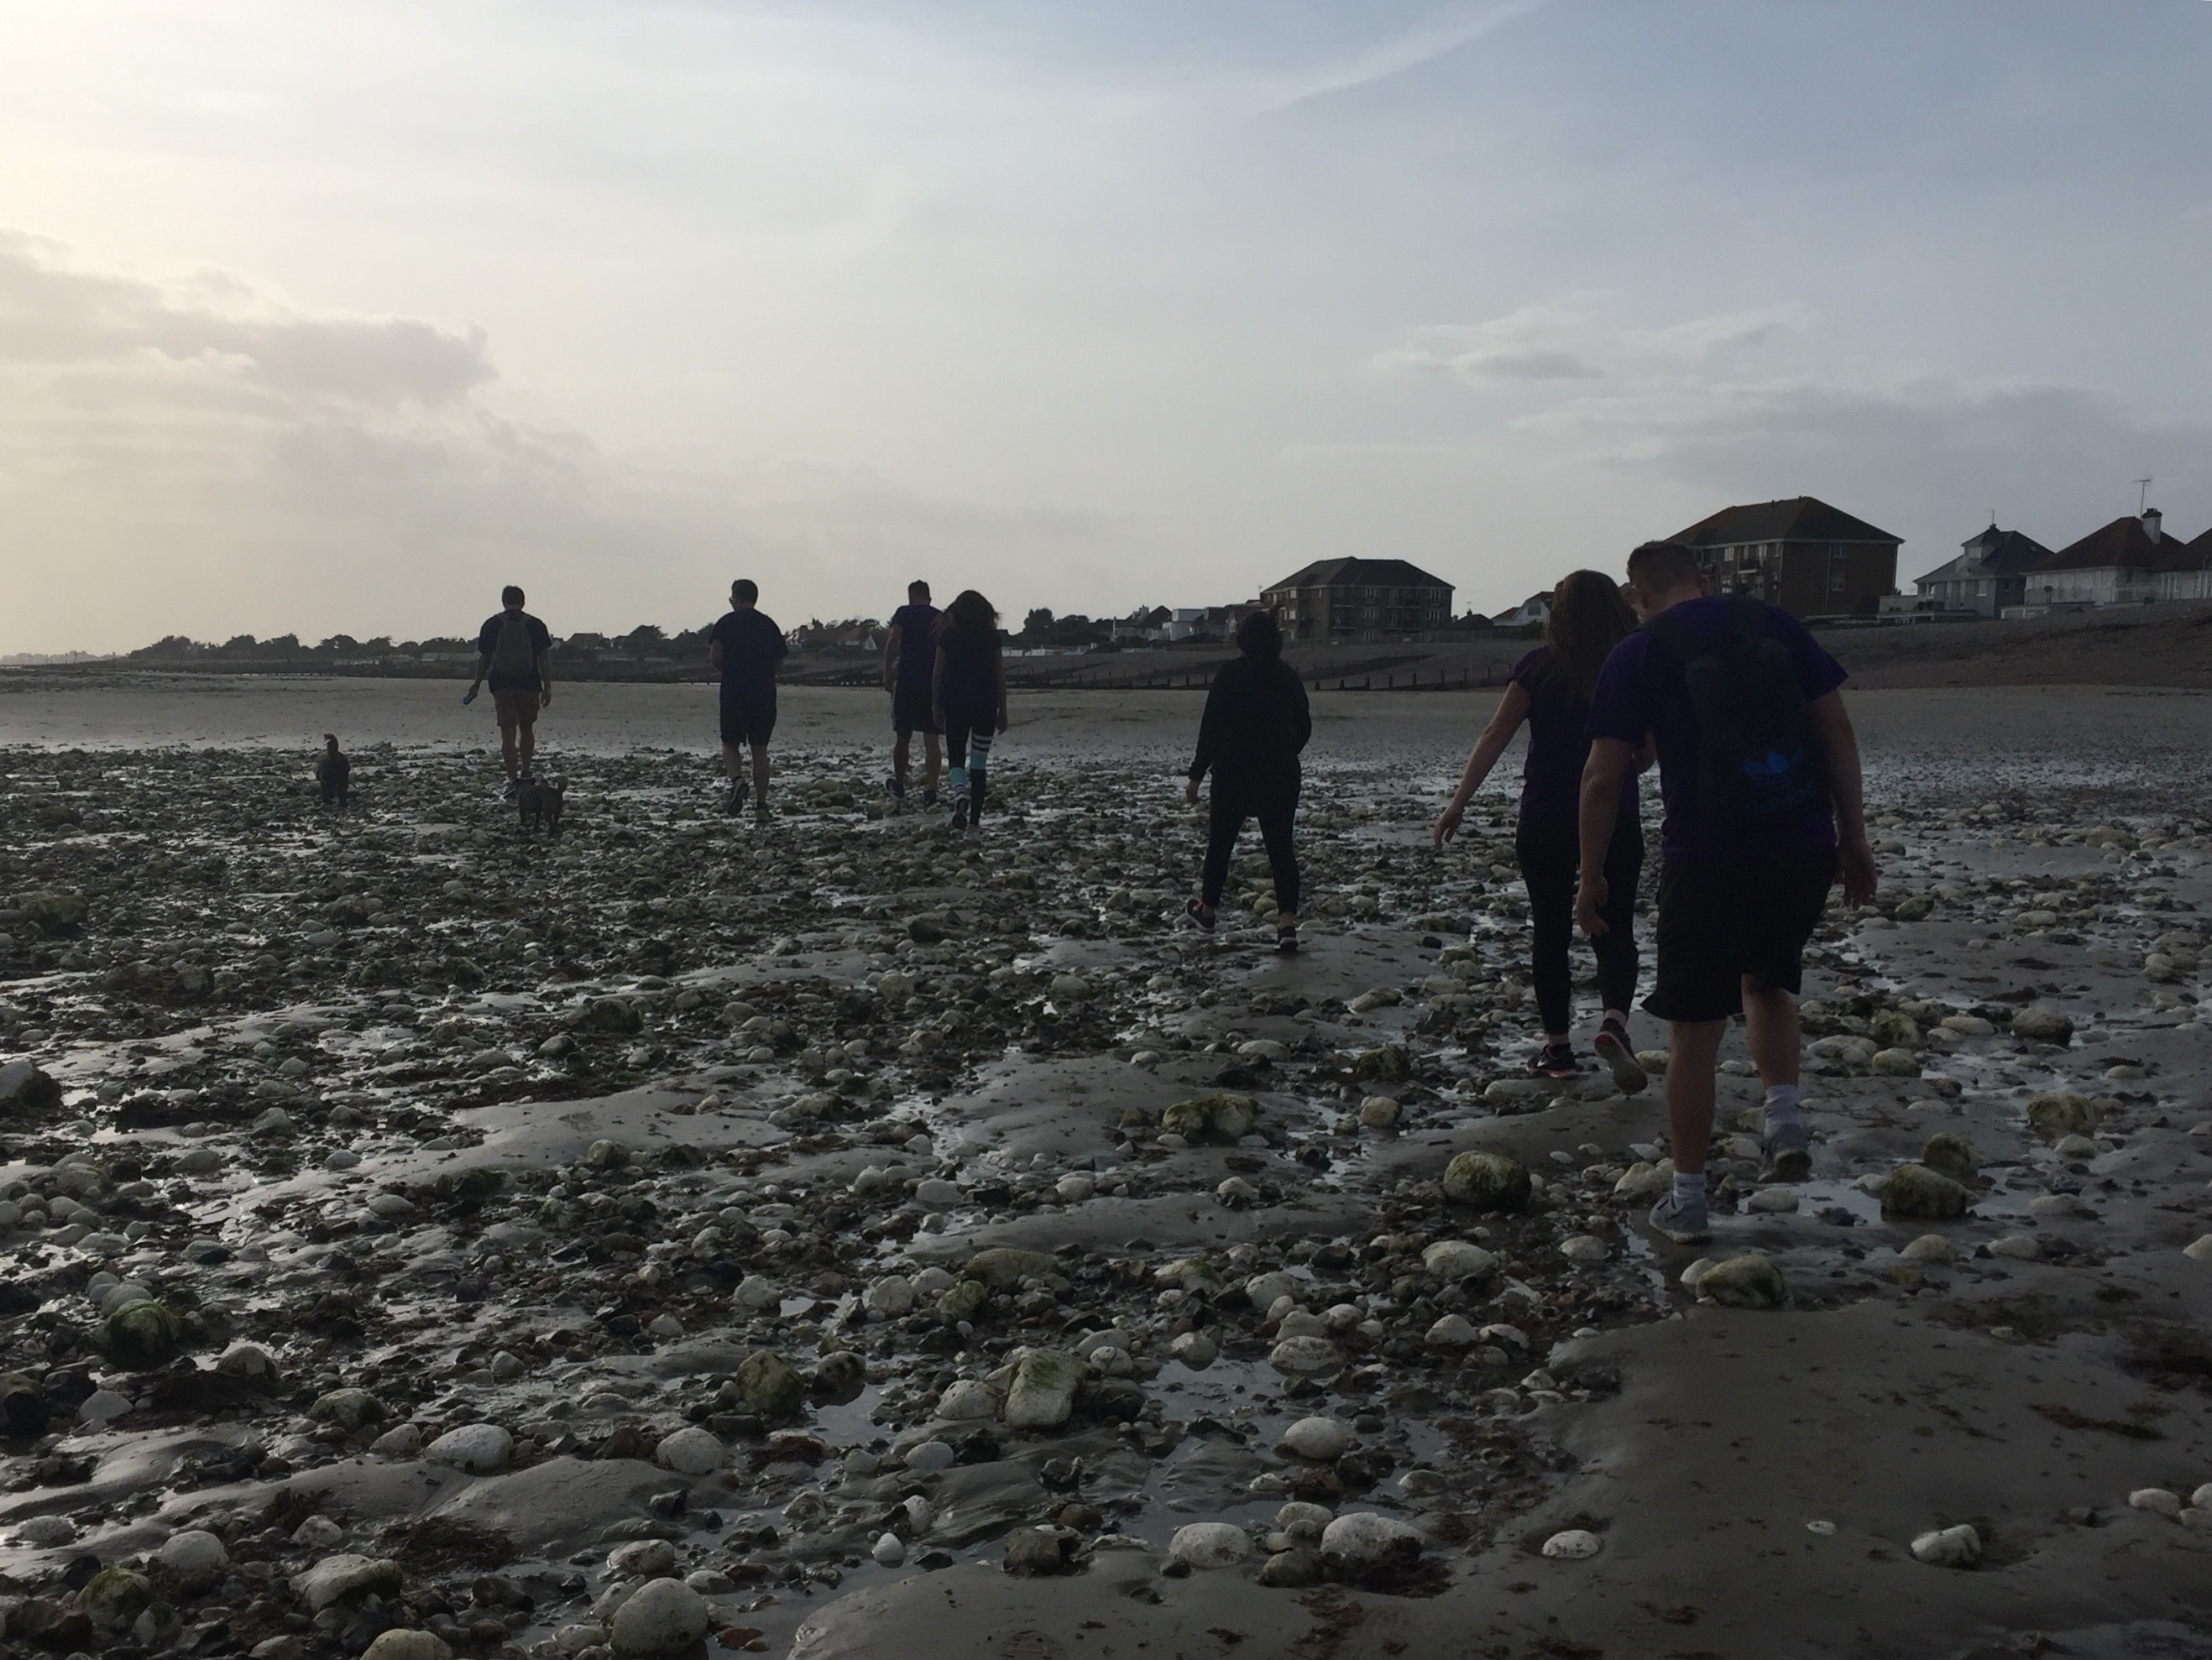 Butlins Bognor Regis team on charity walk for GOSH | Butlins Blog